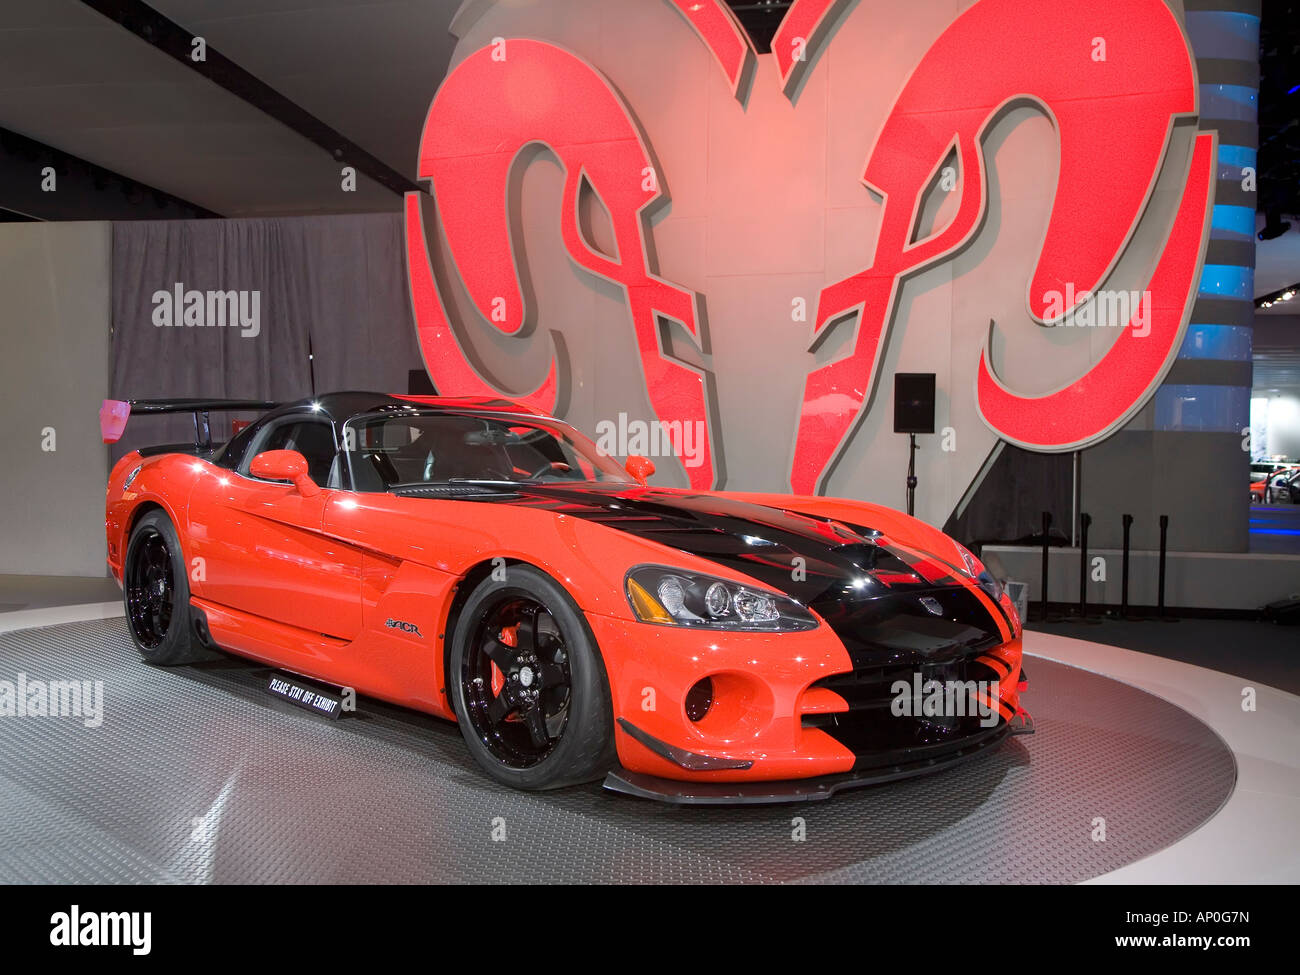 Detroit Michigan The Dodge Viper SRT 10 on display at the North American International Auto Show - Stock Image